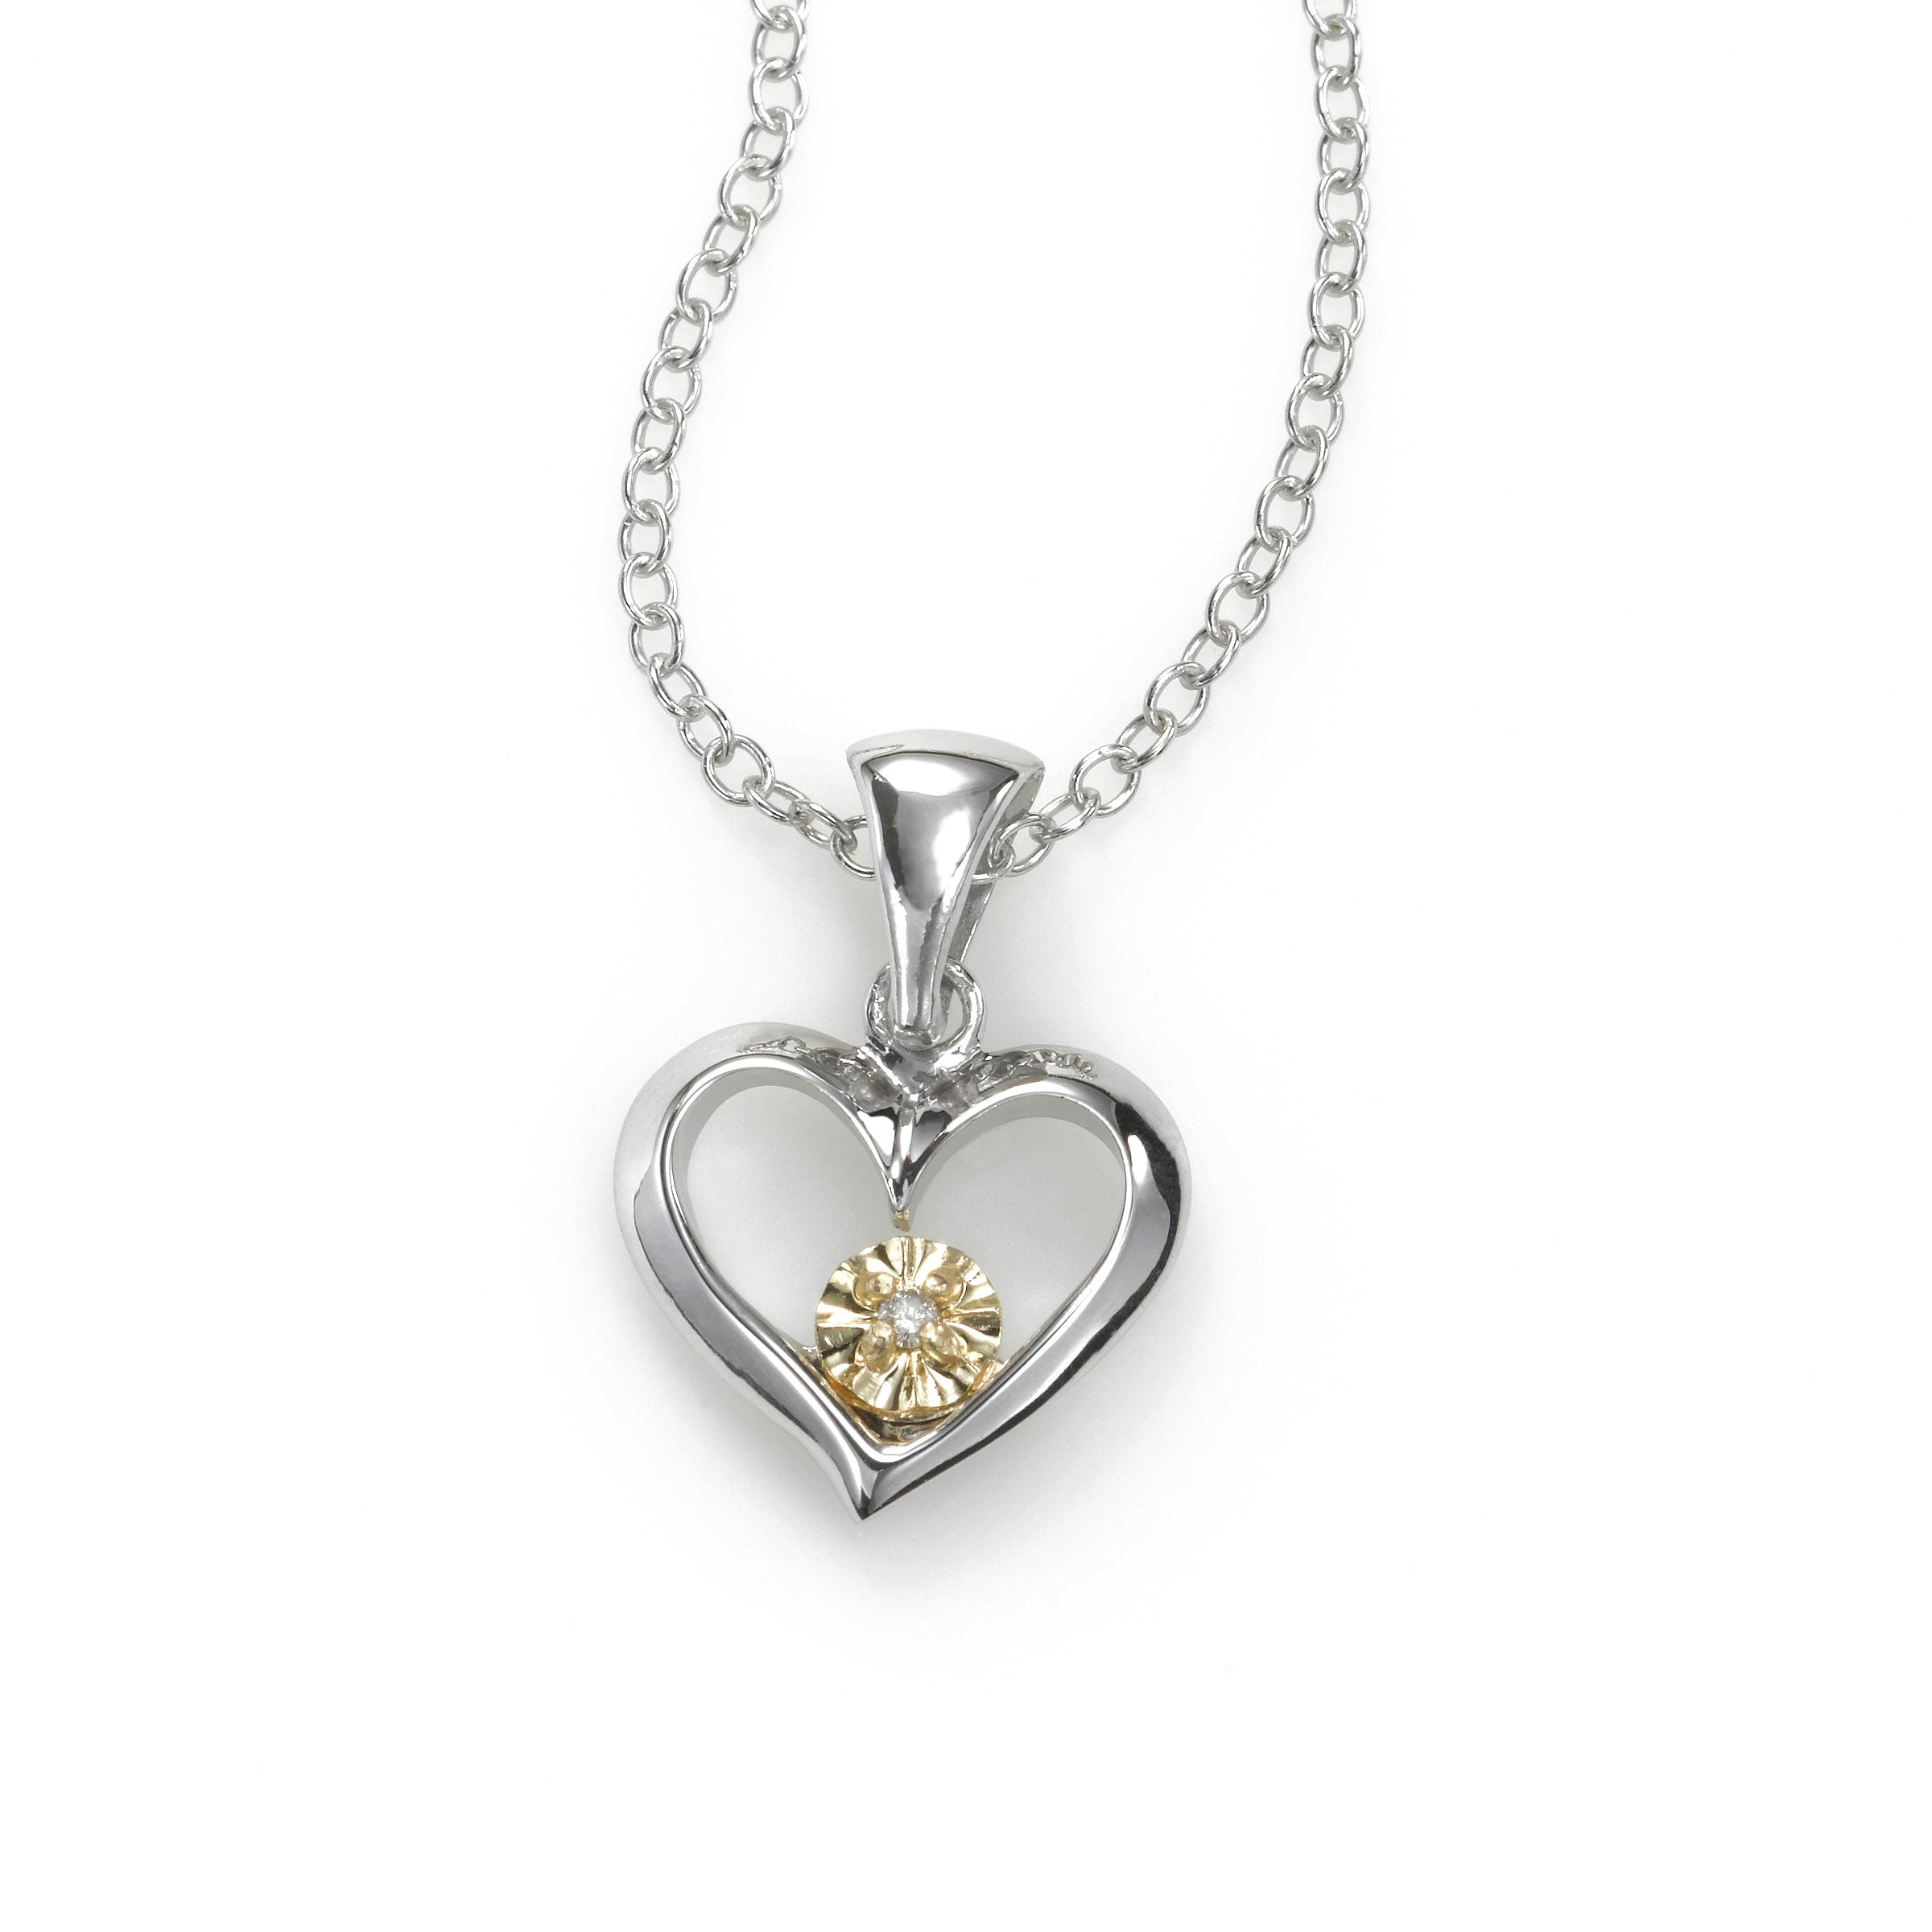 Tween Open Diamond Heart Pendant, Sterling Silver with 14K Yellow Gold